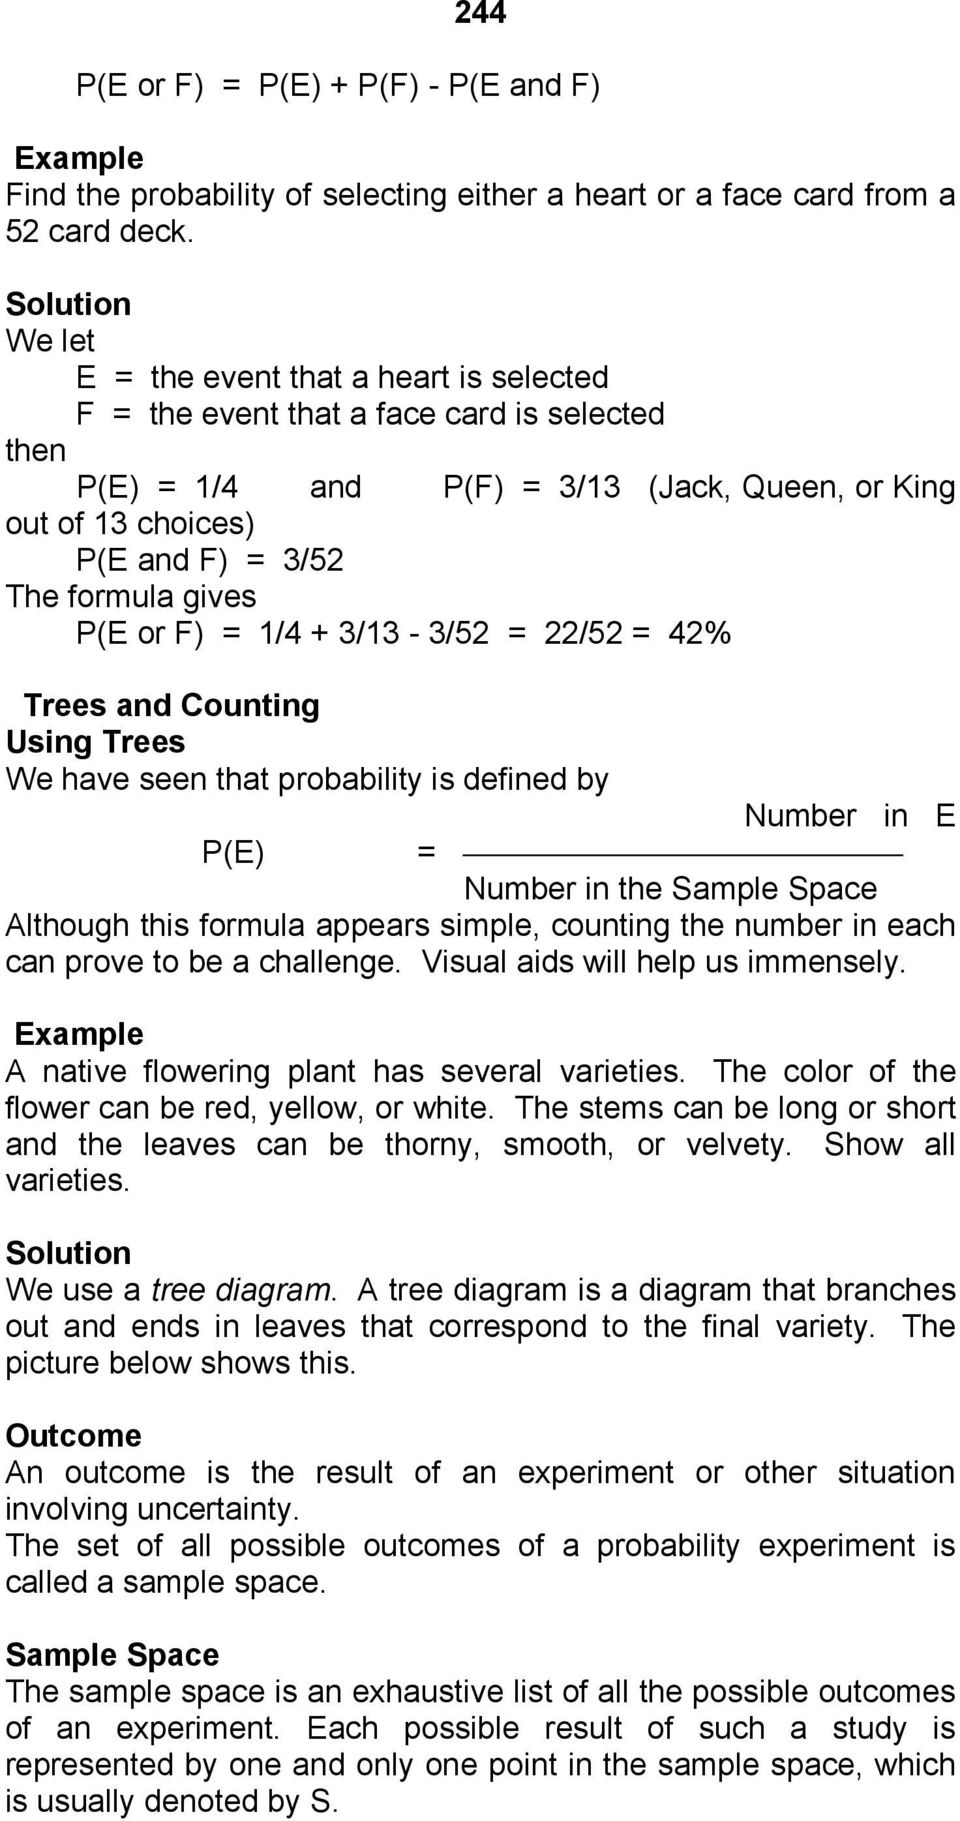 formula gives P(E or F) = 1/4 + 3/13-3/52 = 22/52 = 42% Trees and Counting Using Trees We have seen that probability is defined by Number in E P(E) = Number in the Sample Space Although this formula